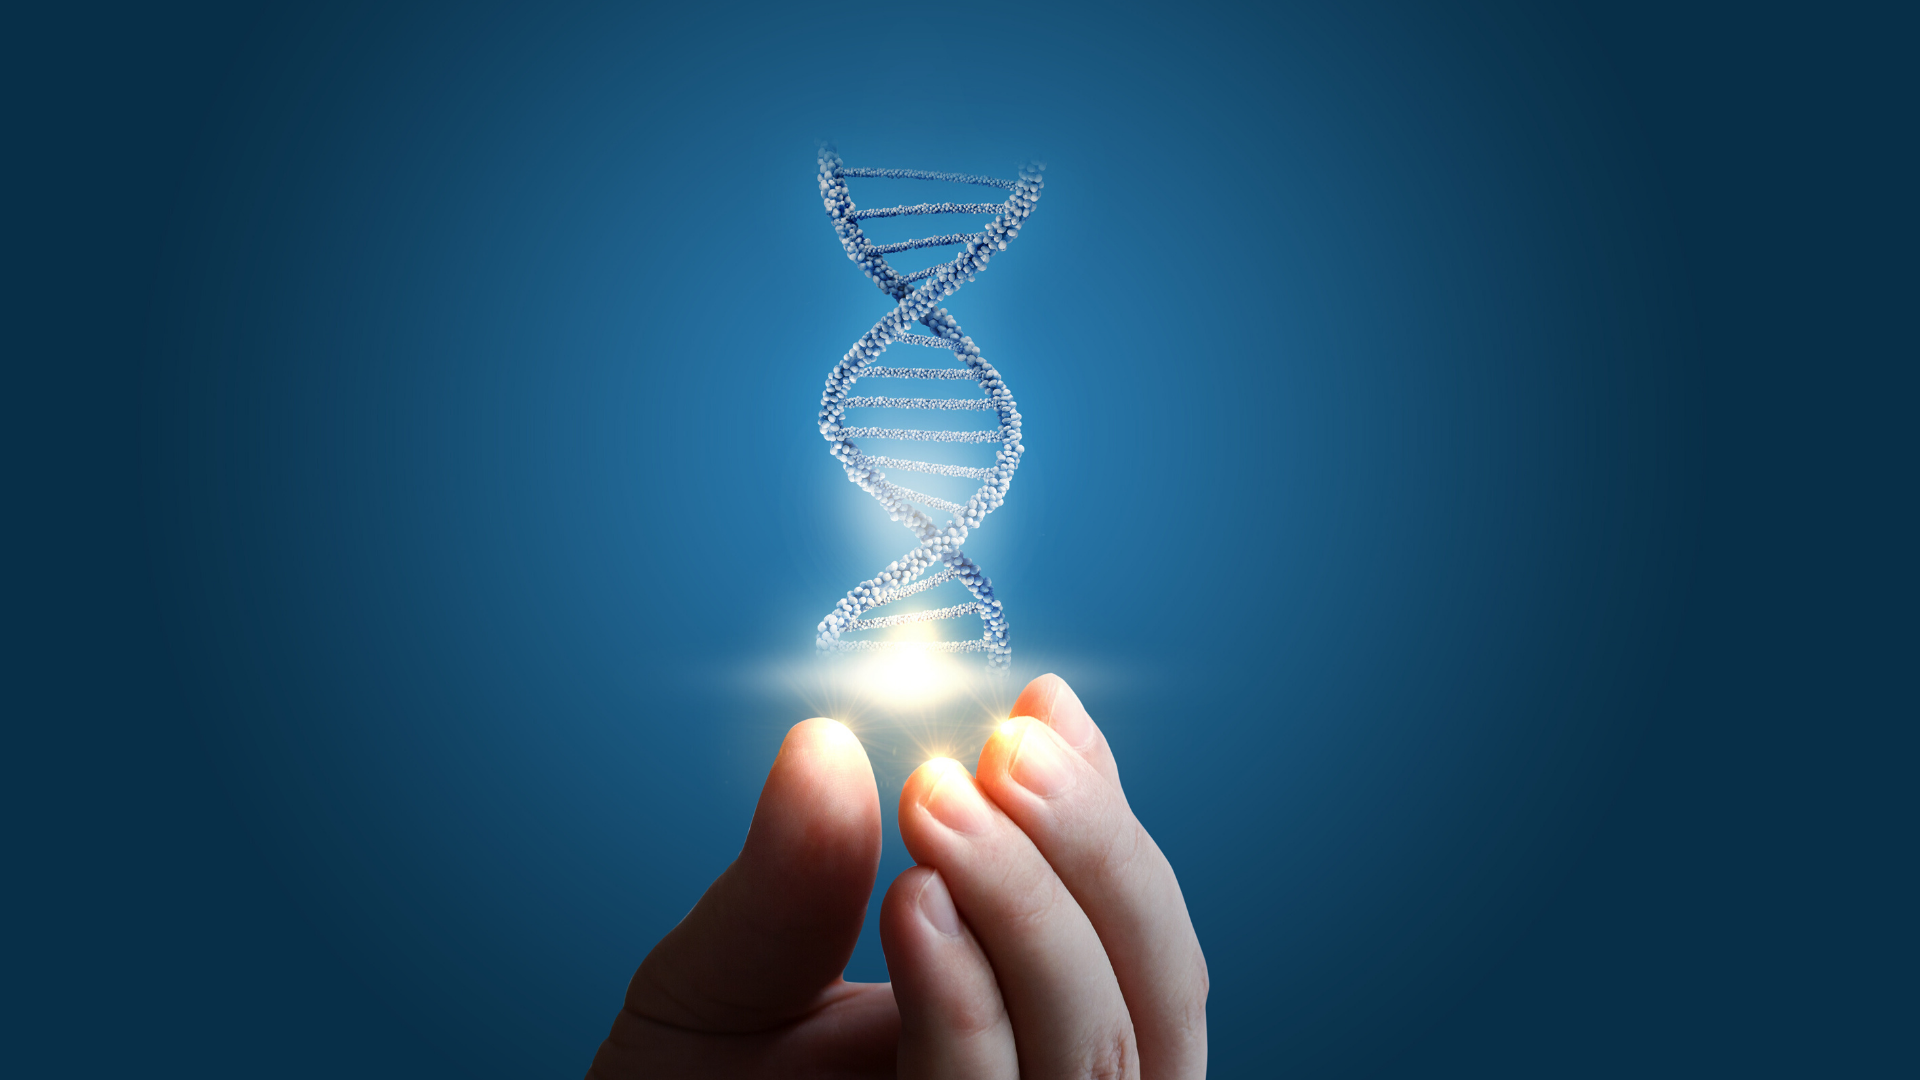 Illustration of hand holding double helix of DNA.